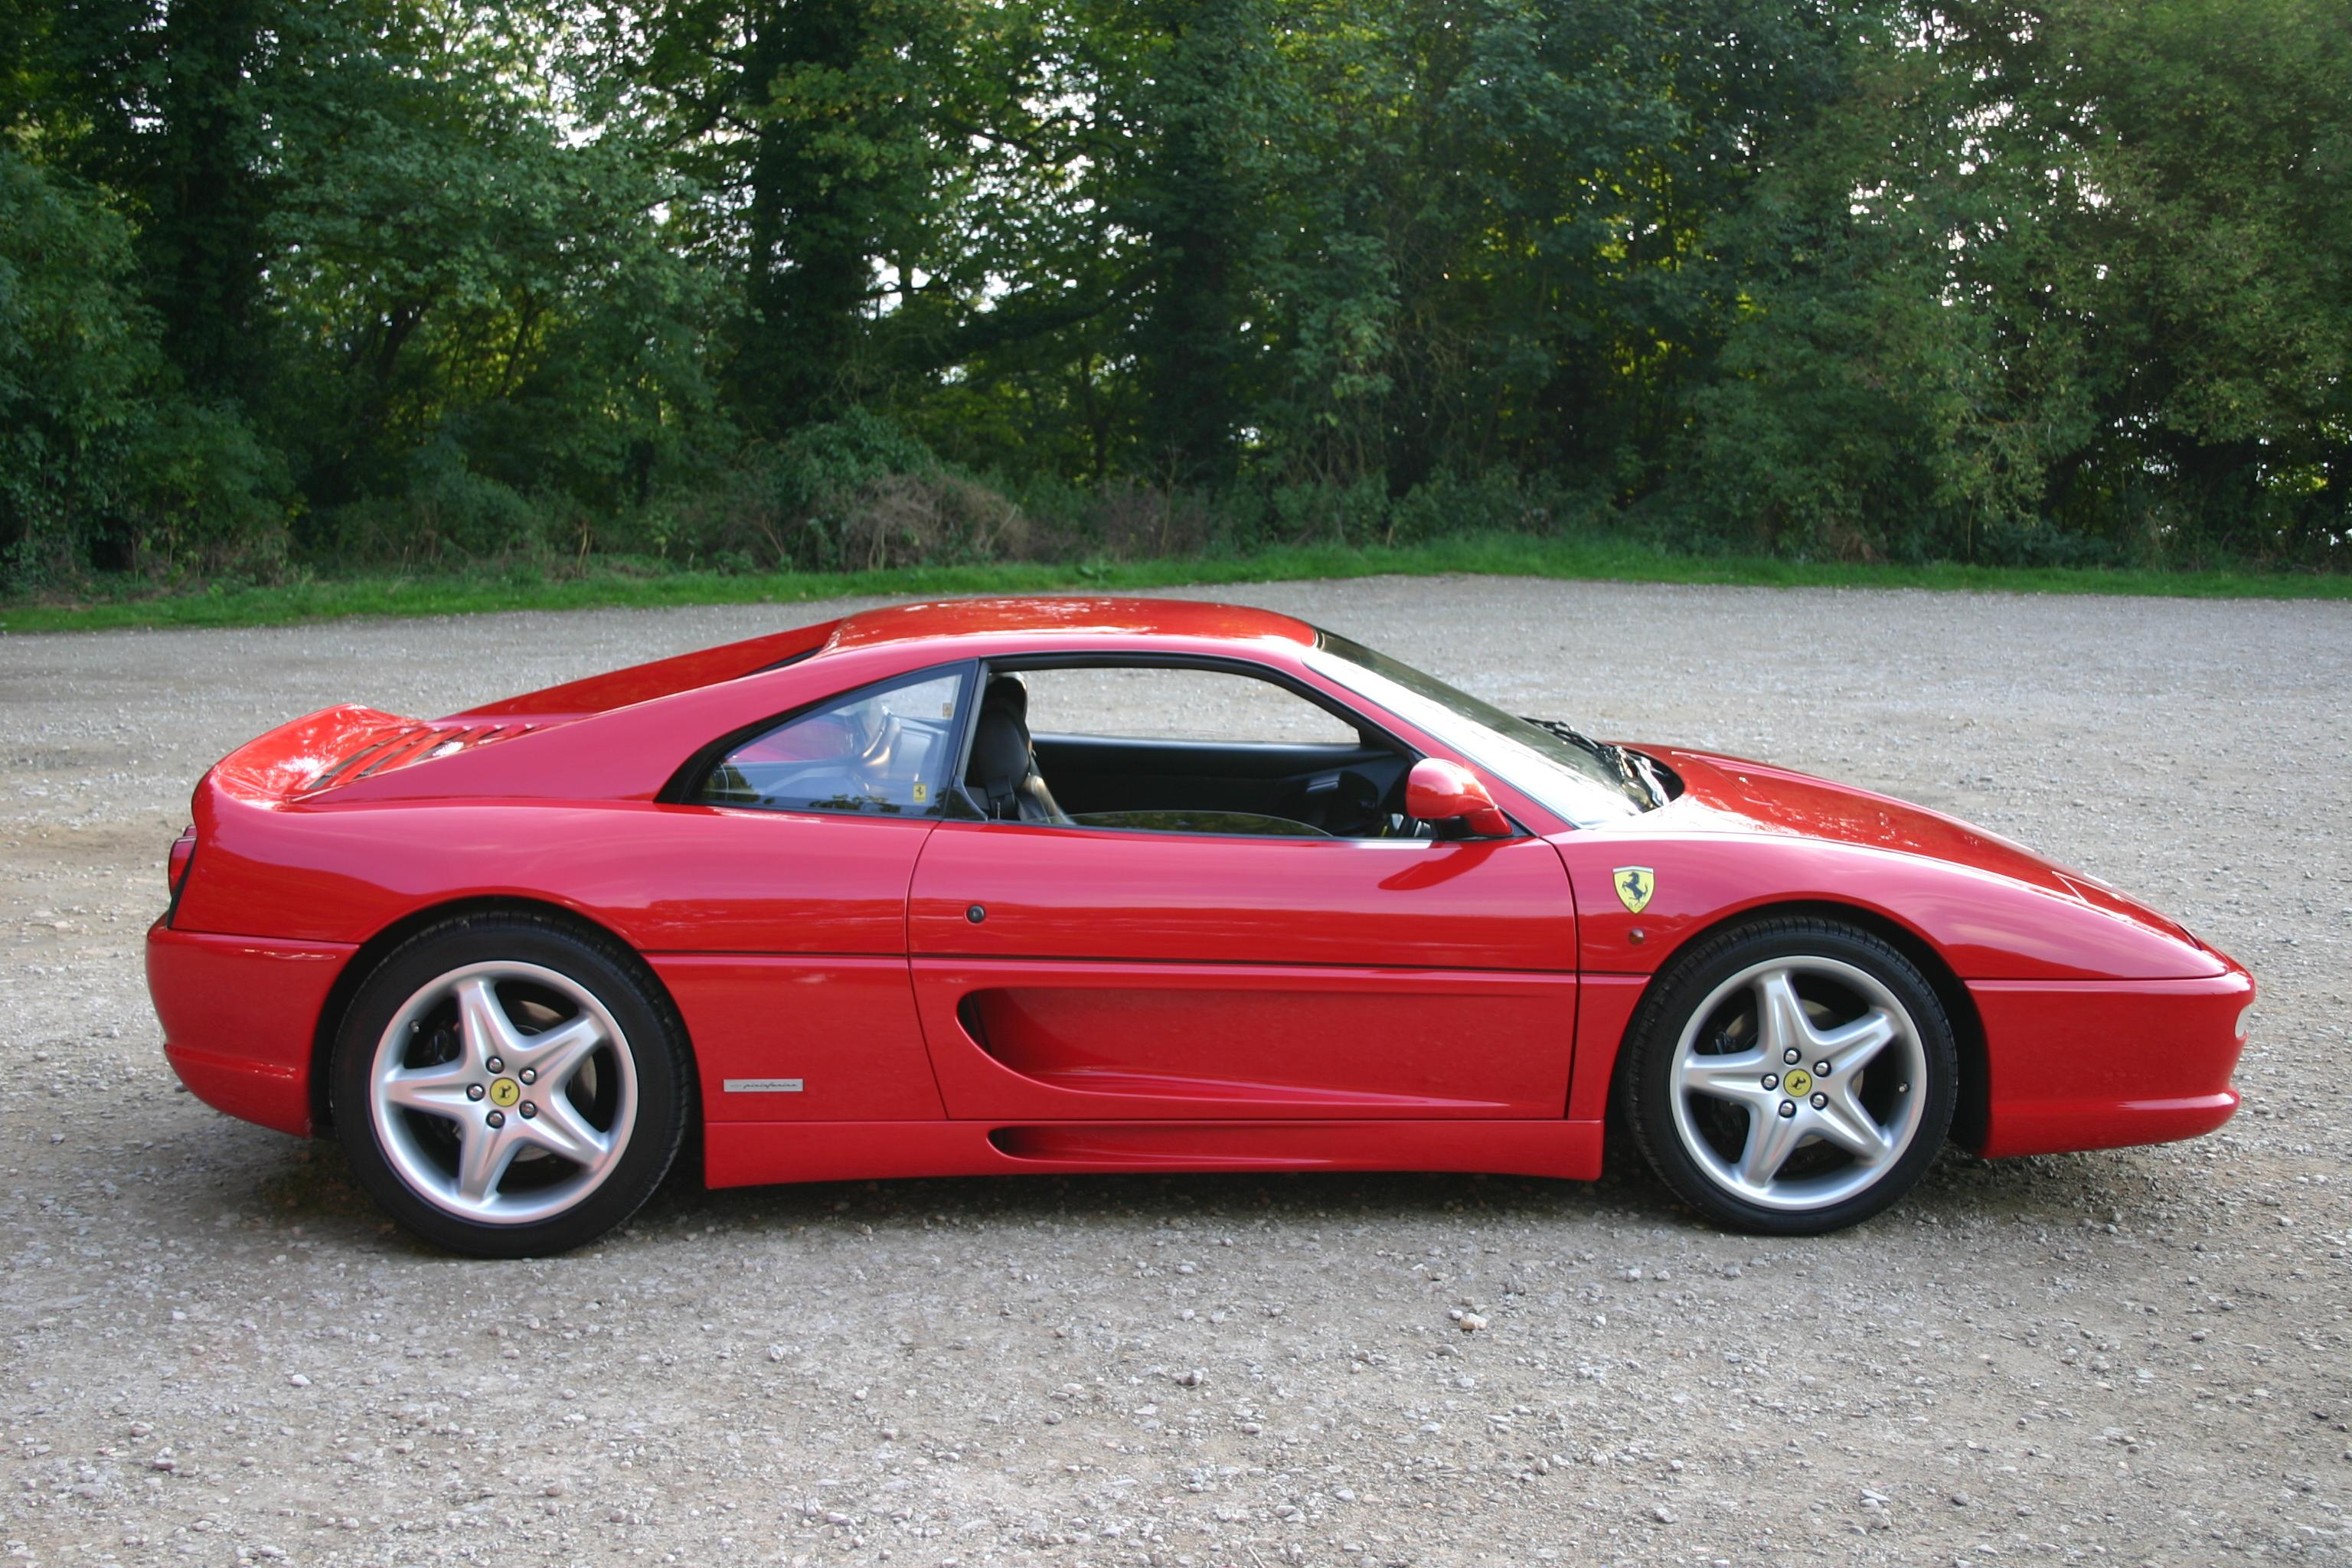 Ferrari F355 Berlinetta Coupe 1994